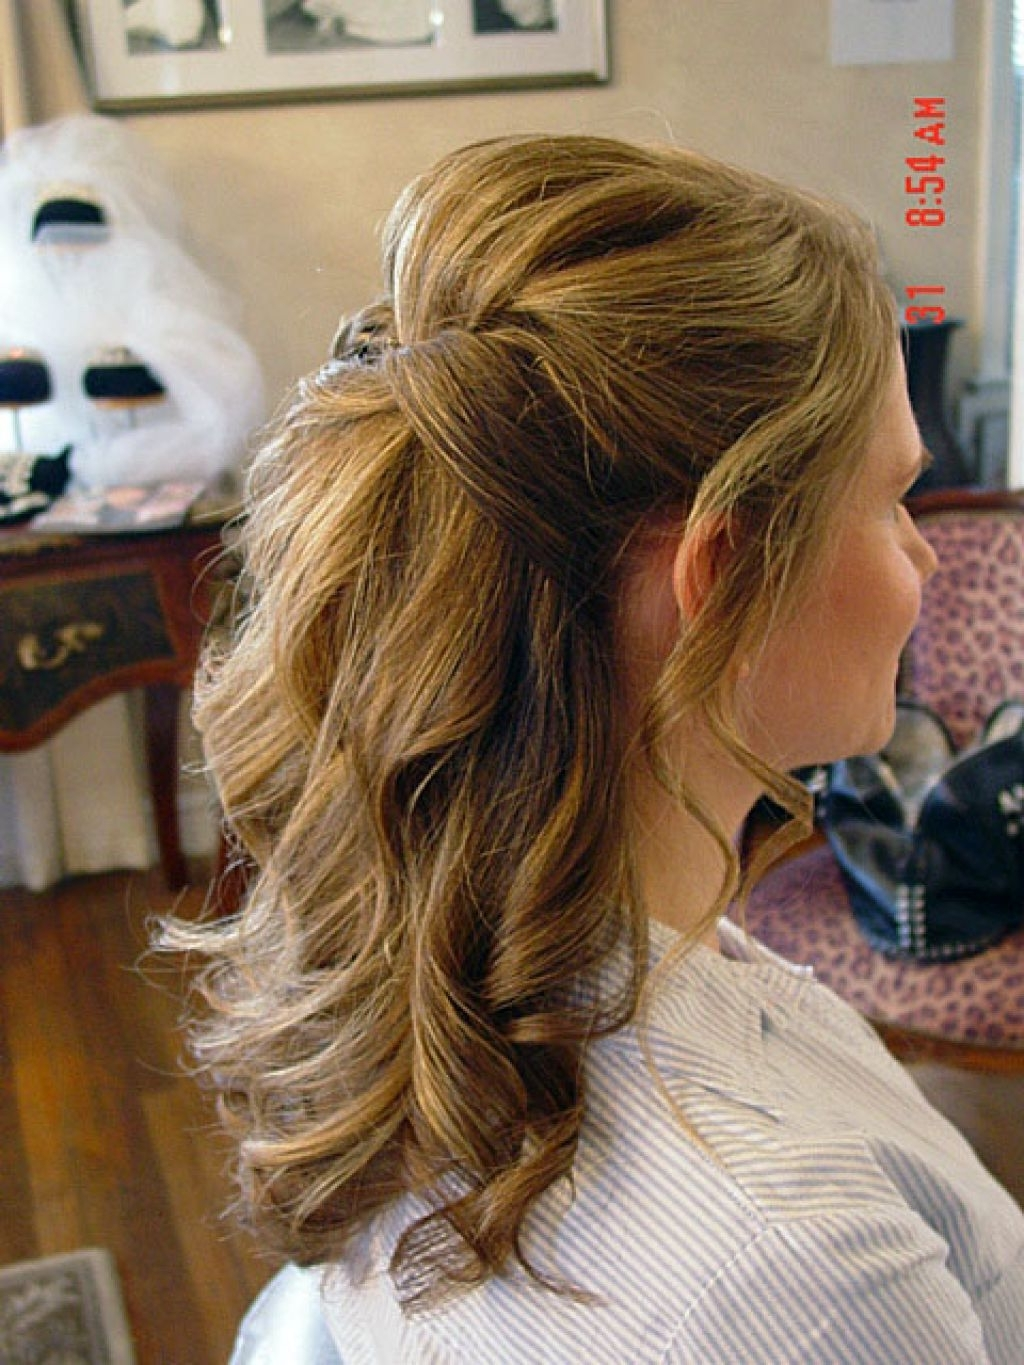 Half Up Half Down Wedding Hair Updo | Hairstyle | Pinterest Regarding Half Up Half Down Updo Hairstyles (View 7 of 15)